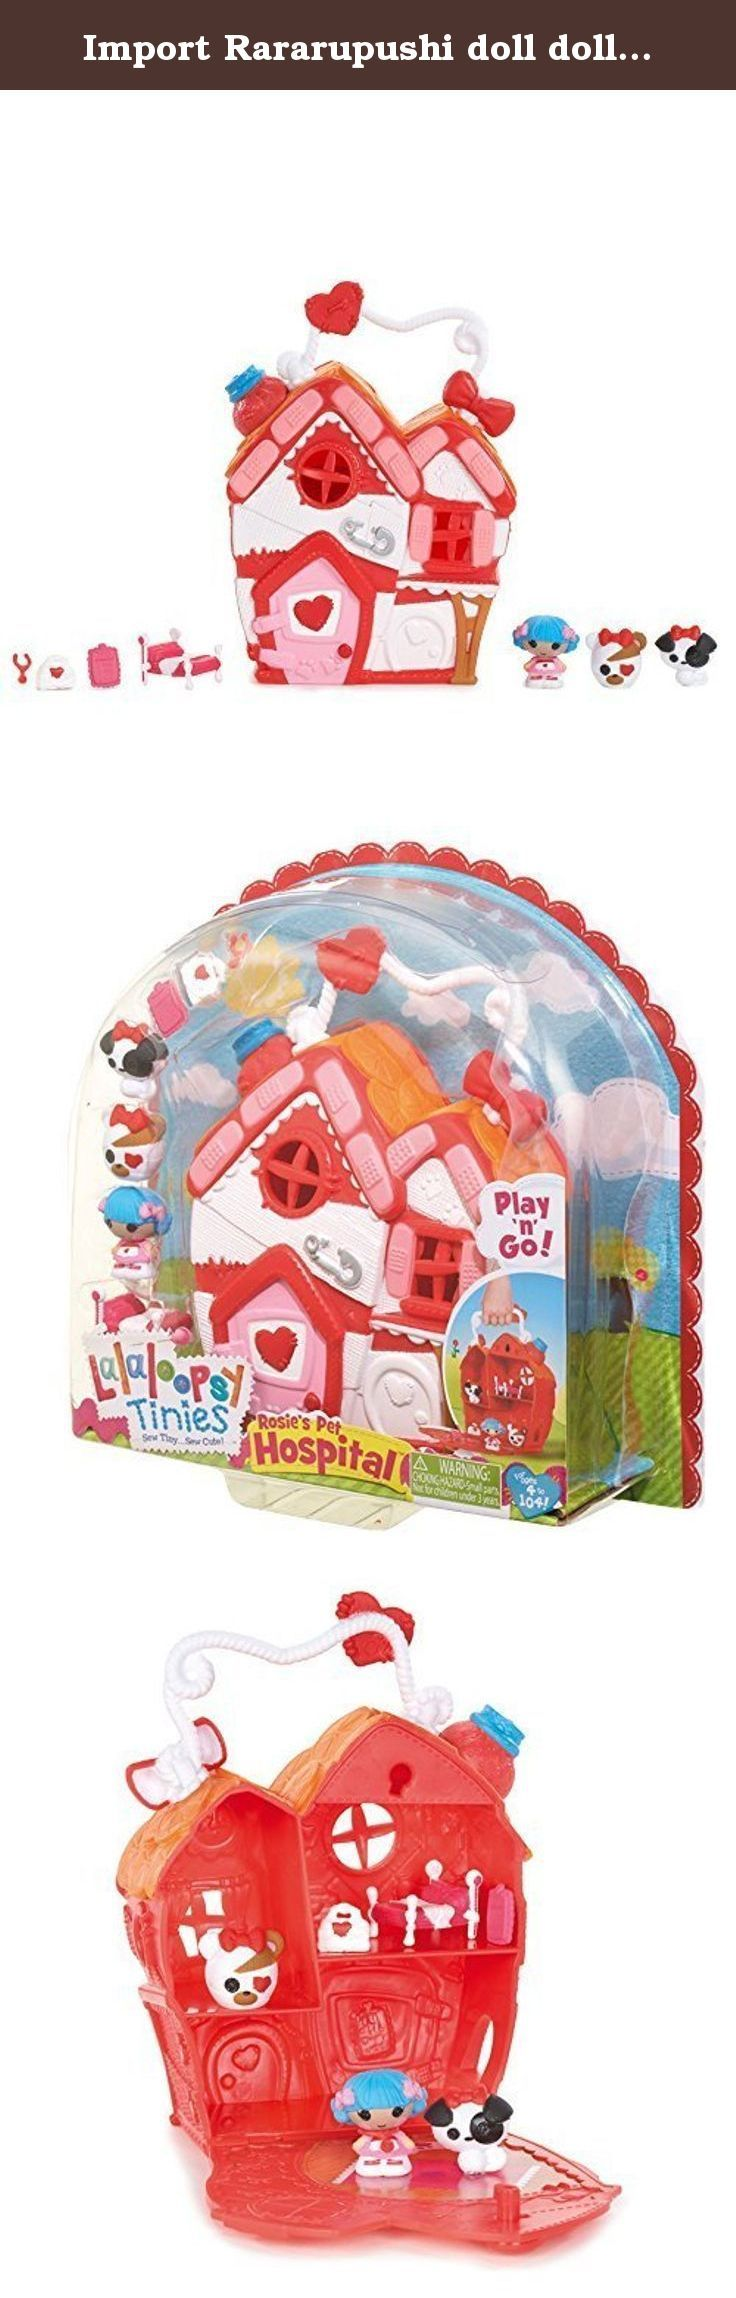 Import Rararupushi doll doll Lalaloopsy Tinies Houses Rosie Pet Hospital [parallel import goods]. It's shipped off from Japan.